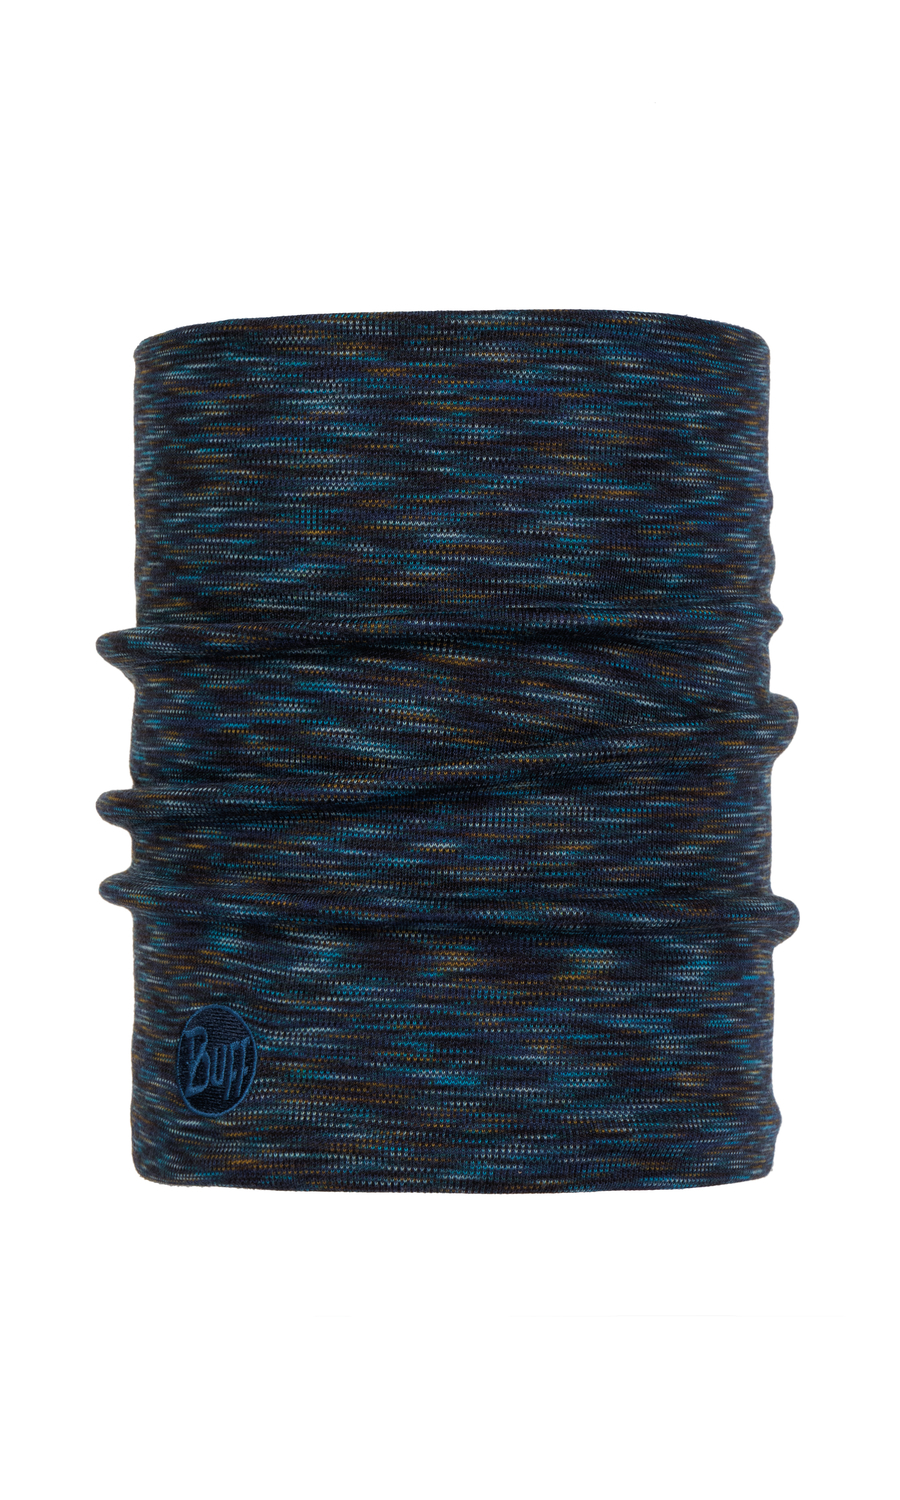 БАНДАНА BUFF HEAVYWEIGHT MERINO WOOL